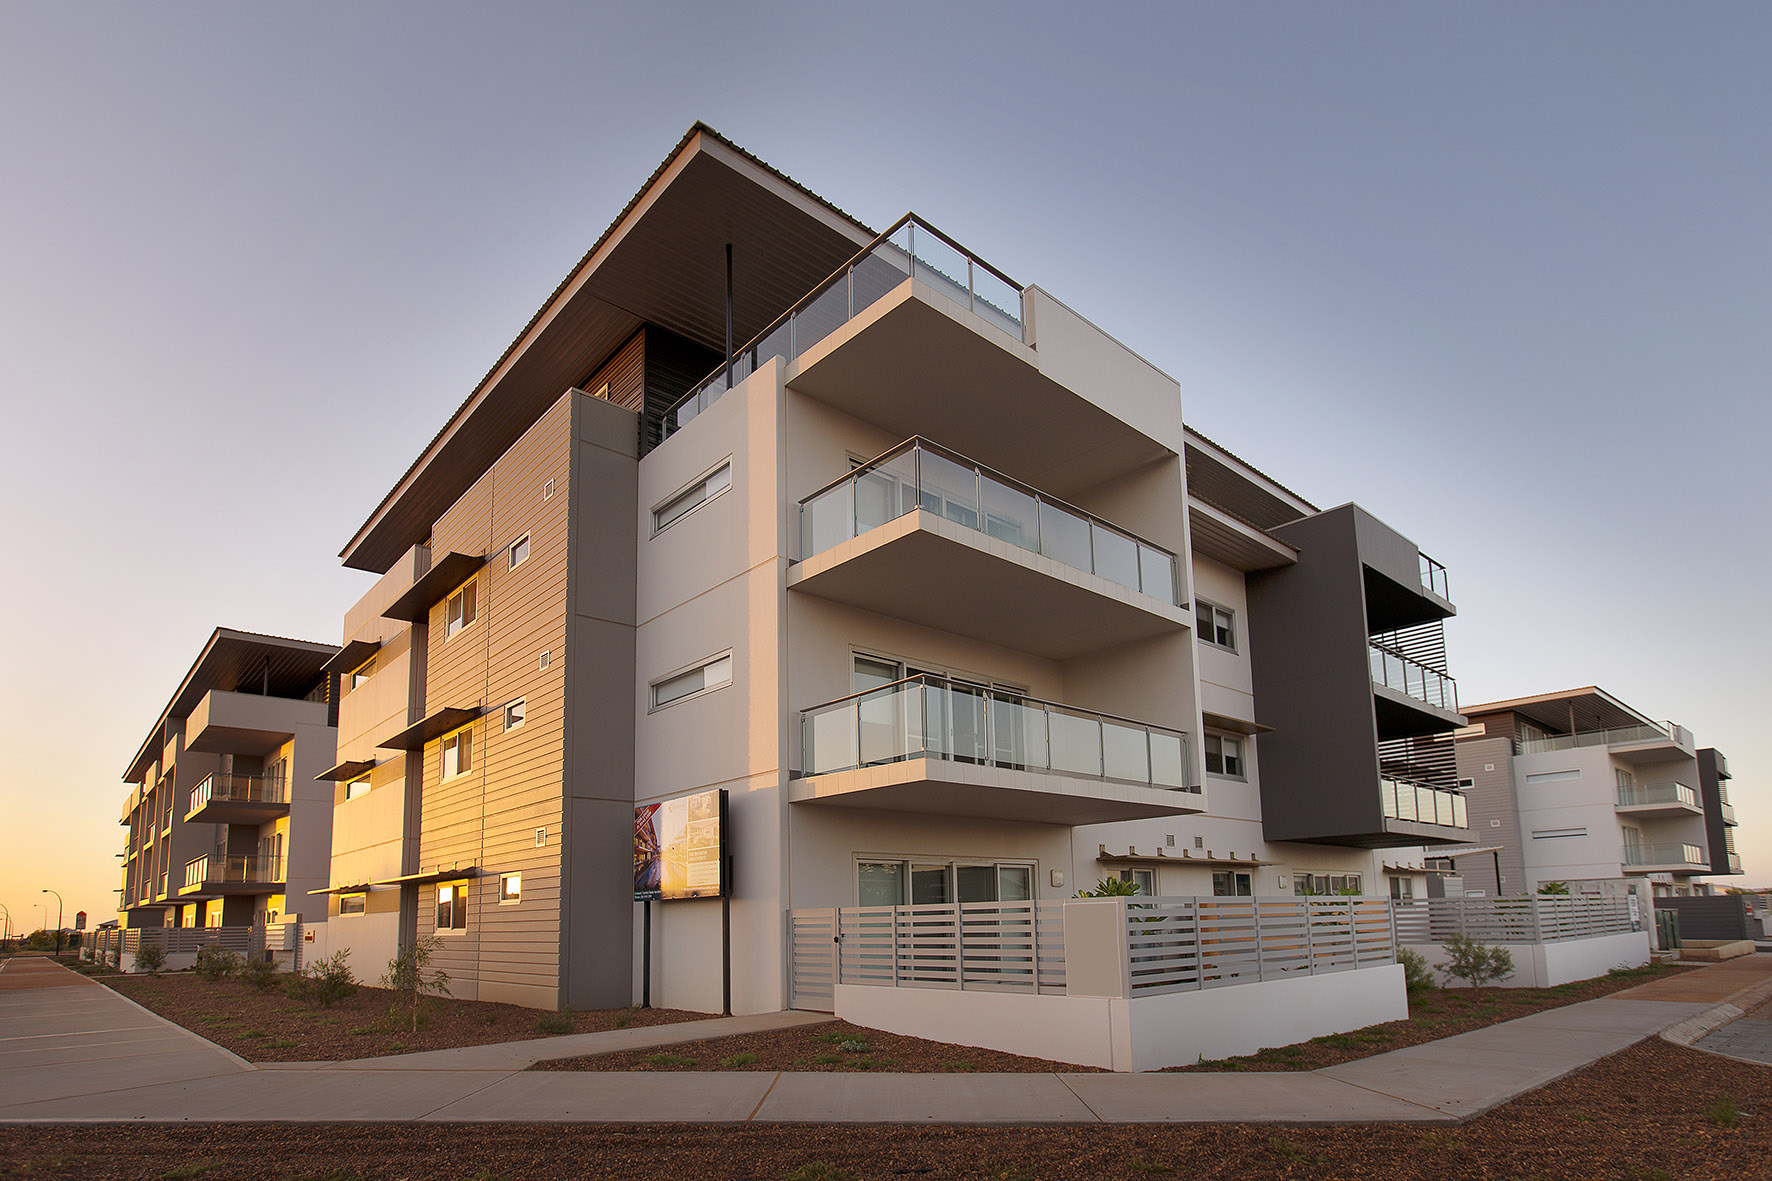 2014 MBA Award - Wagari Drive Apartment Development